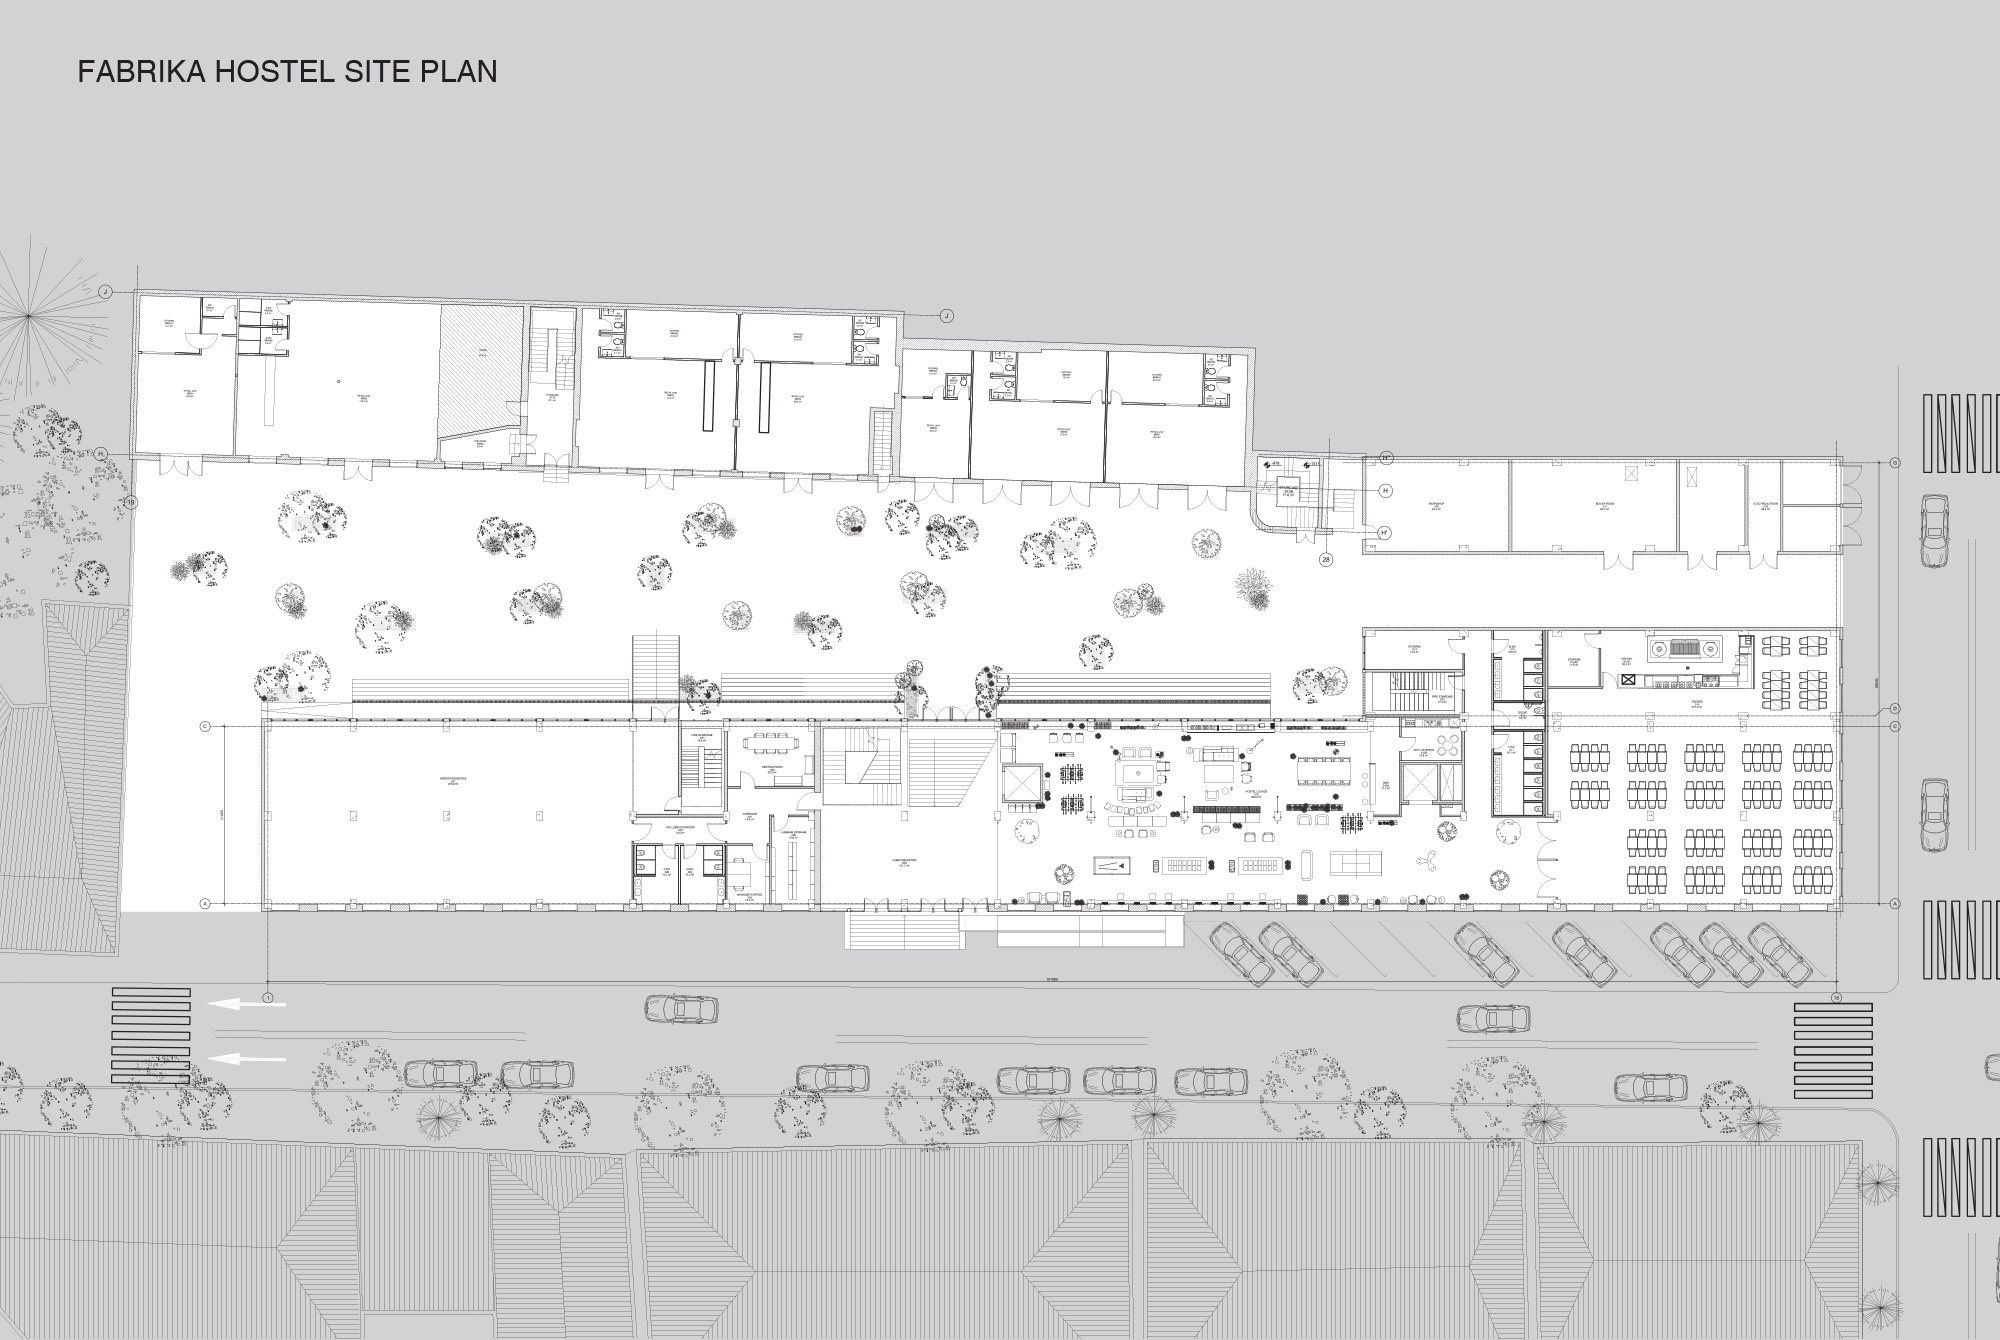 FABRIKA by MUA site plan courtesy of MUA